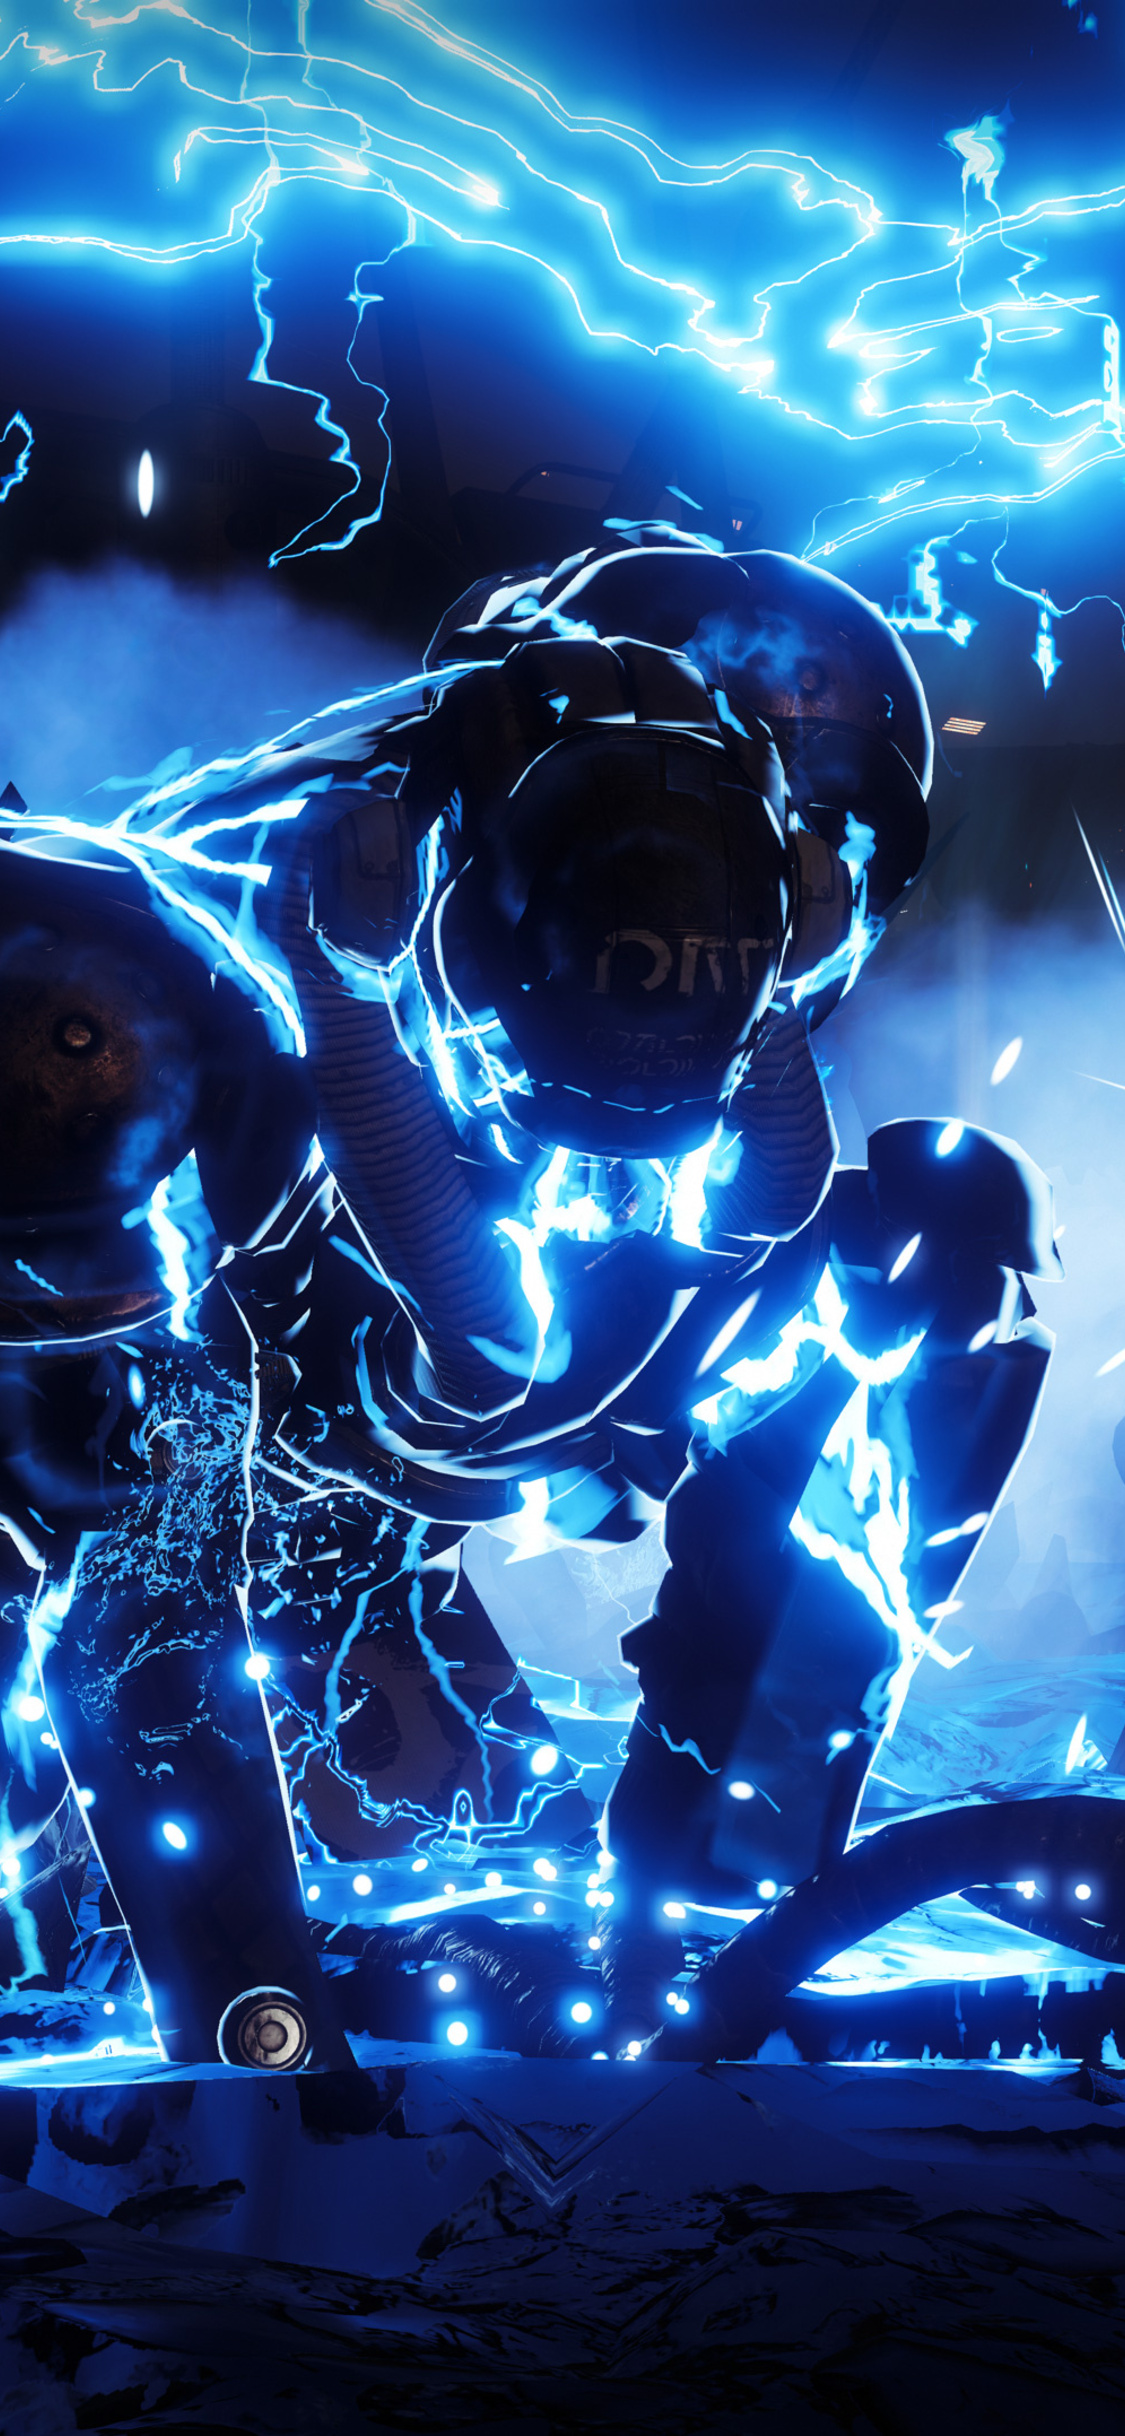 Check out these 5 big changes to Destiny 2 combat (and